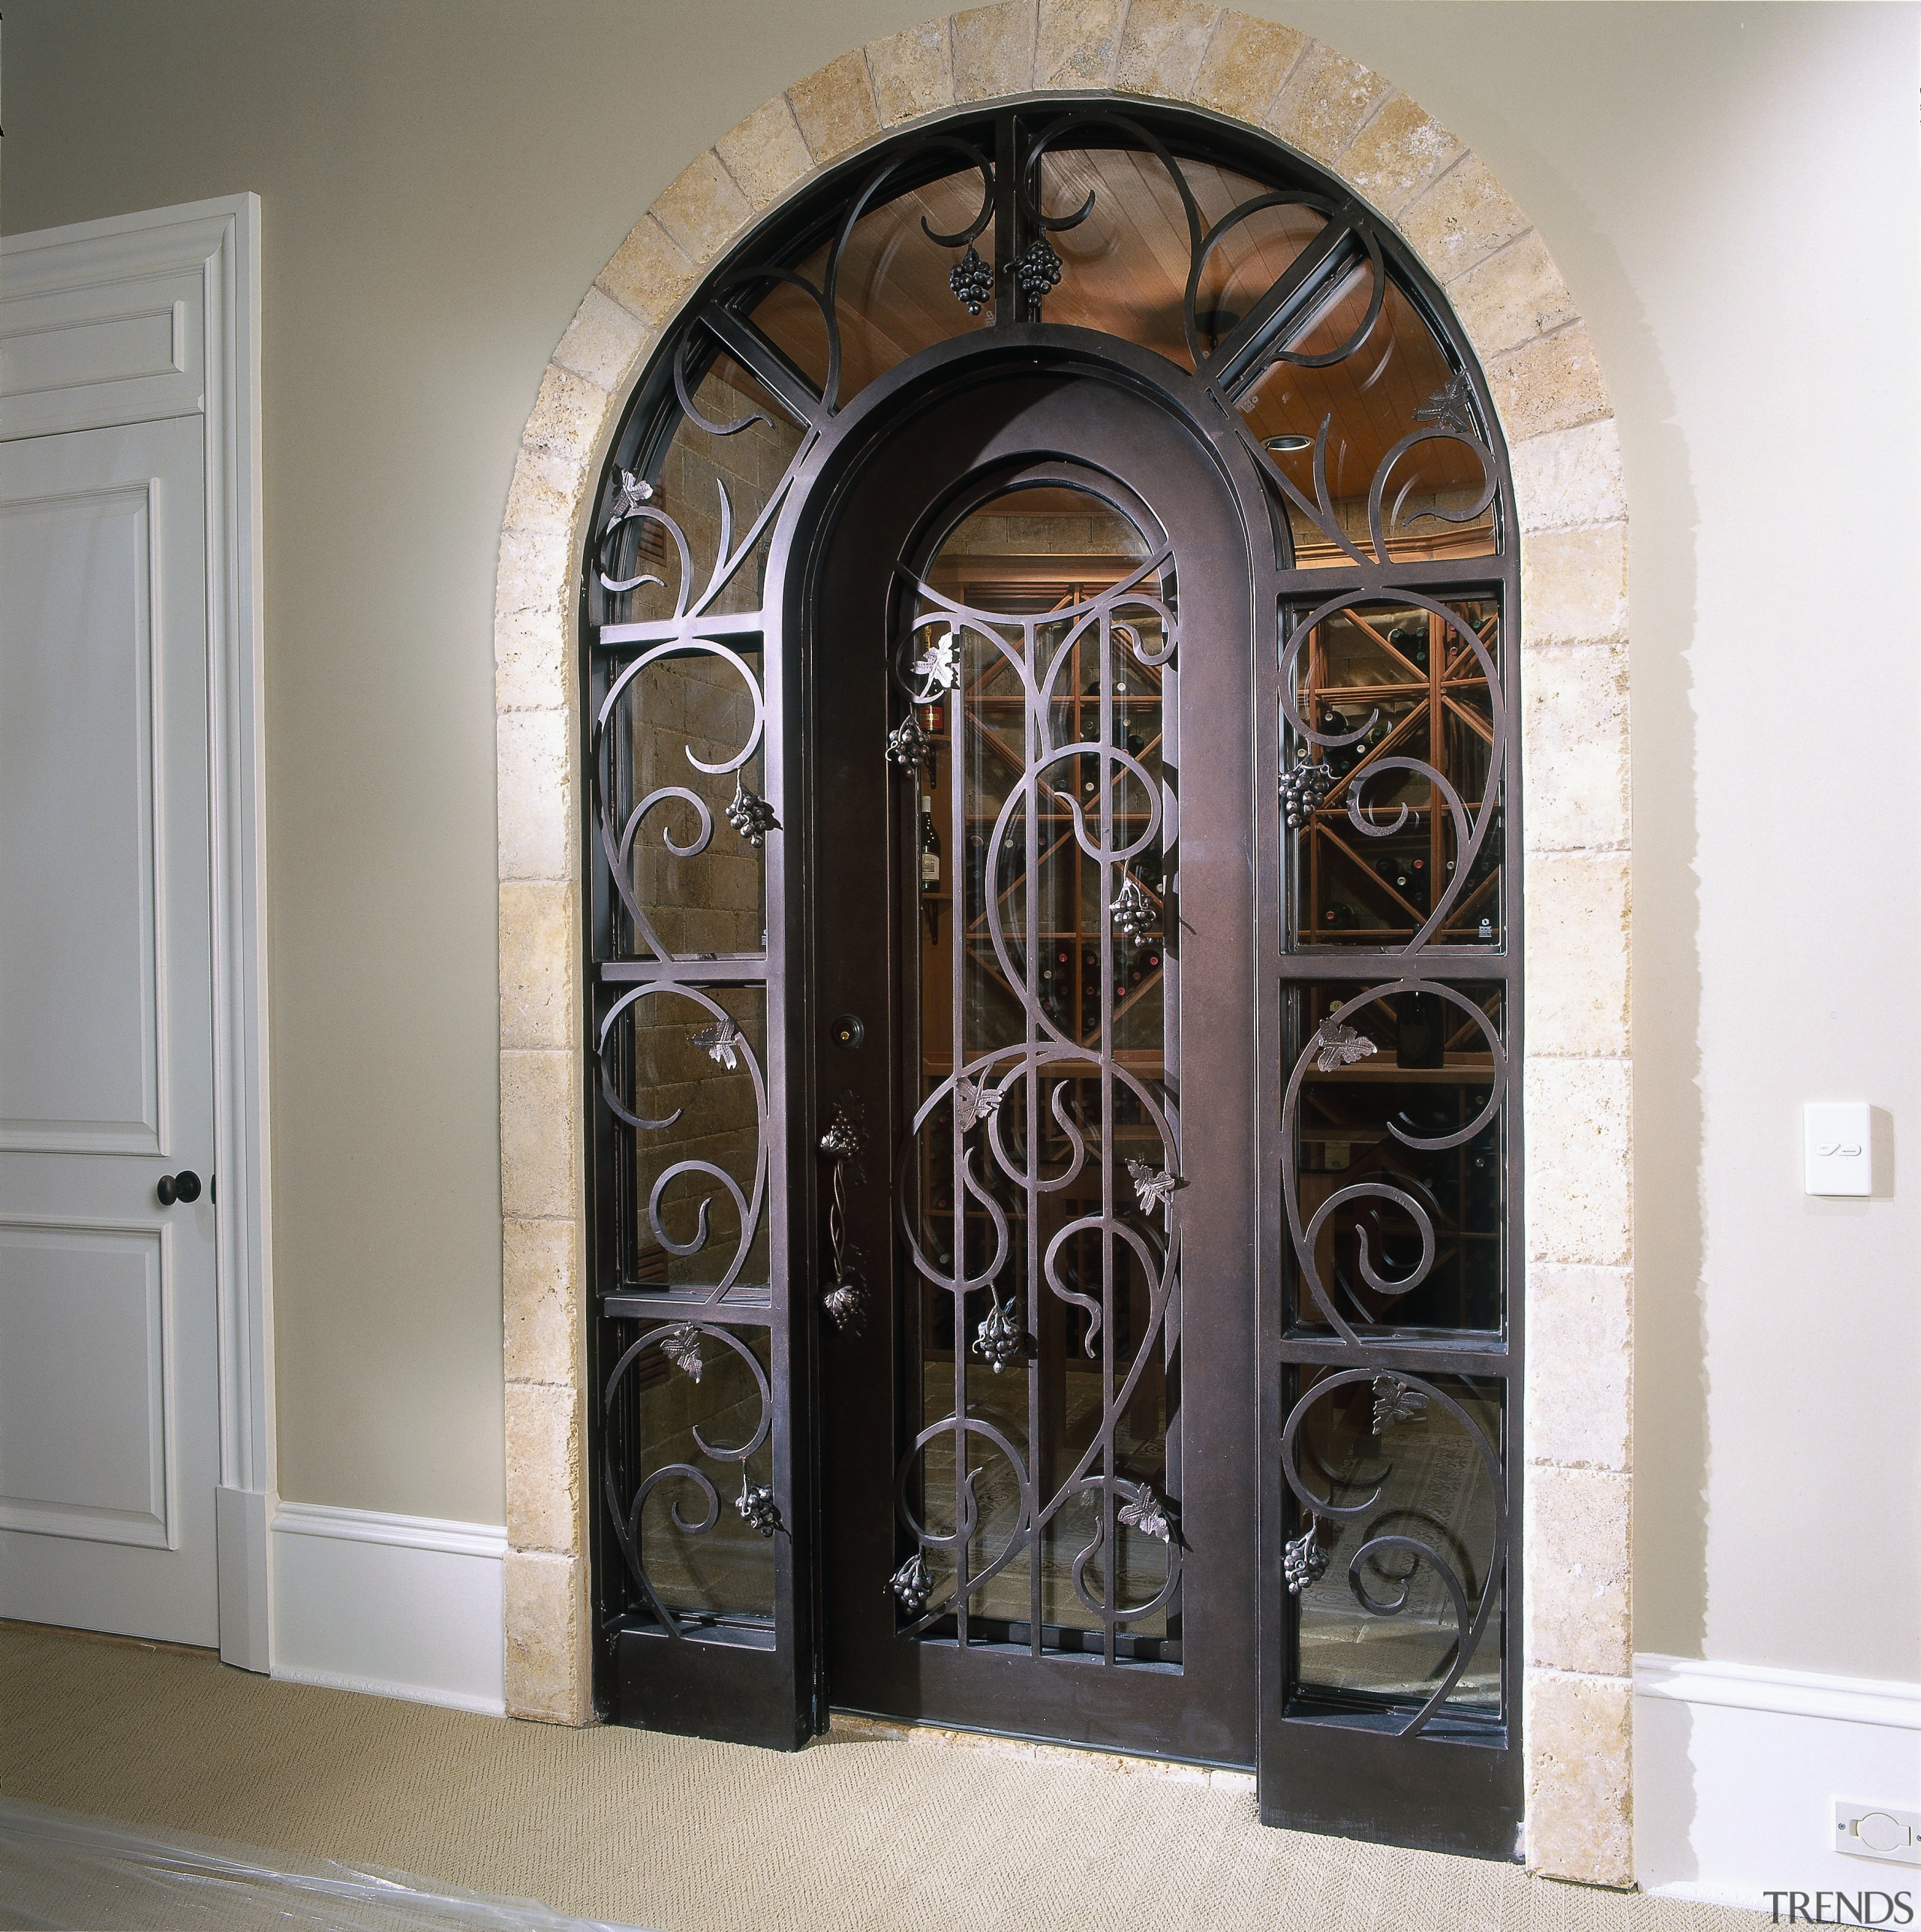 View of the entrance to the wine cellar arch, door, iron, window, white, gray, black